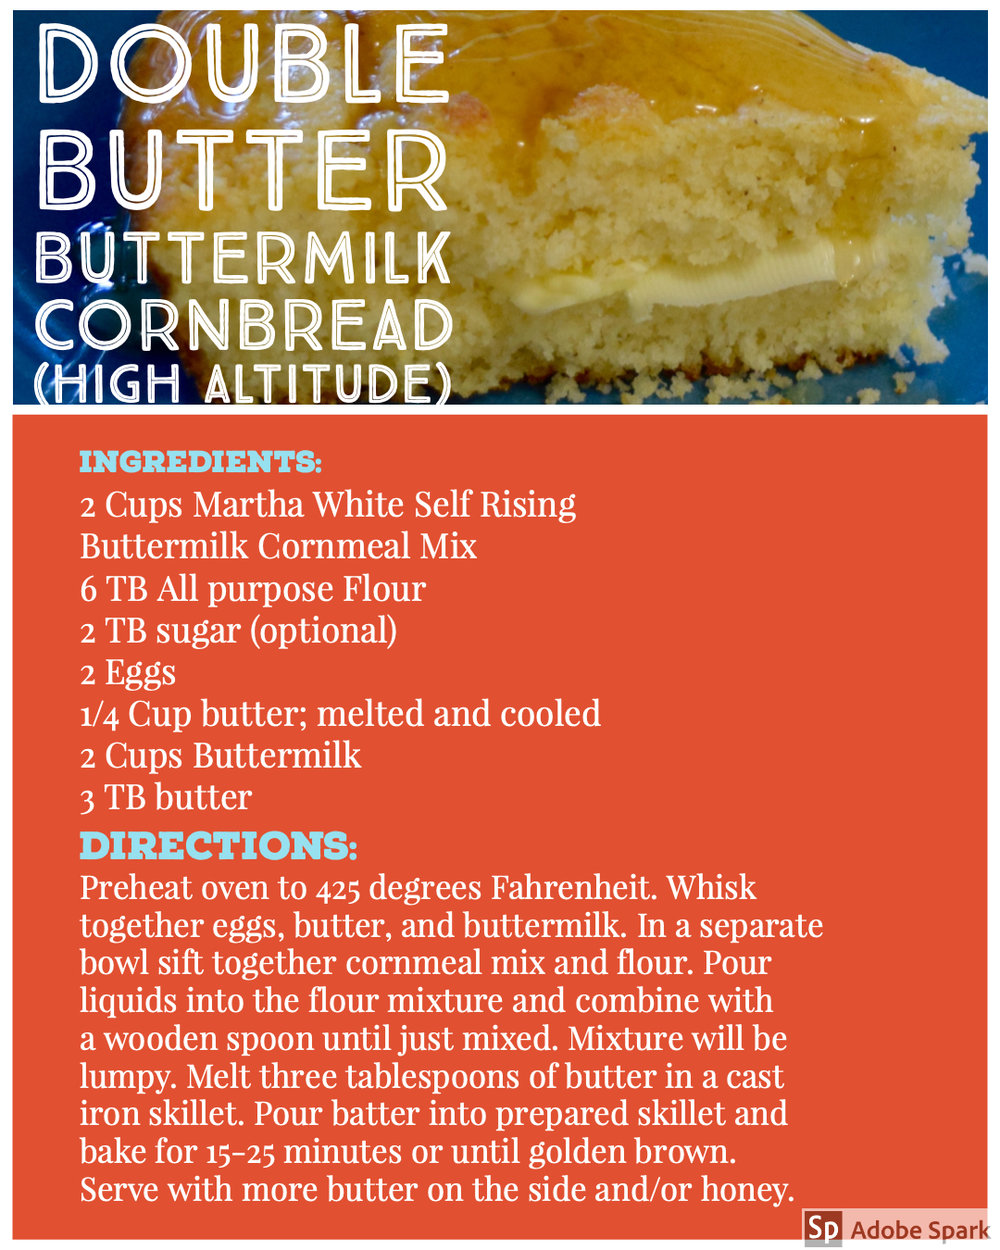 double butter buttermilk cornbread recipe card.jpg